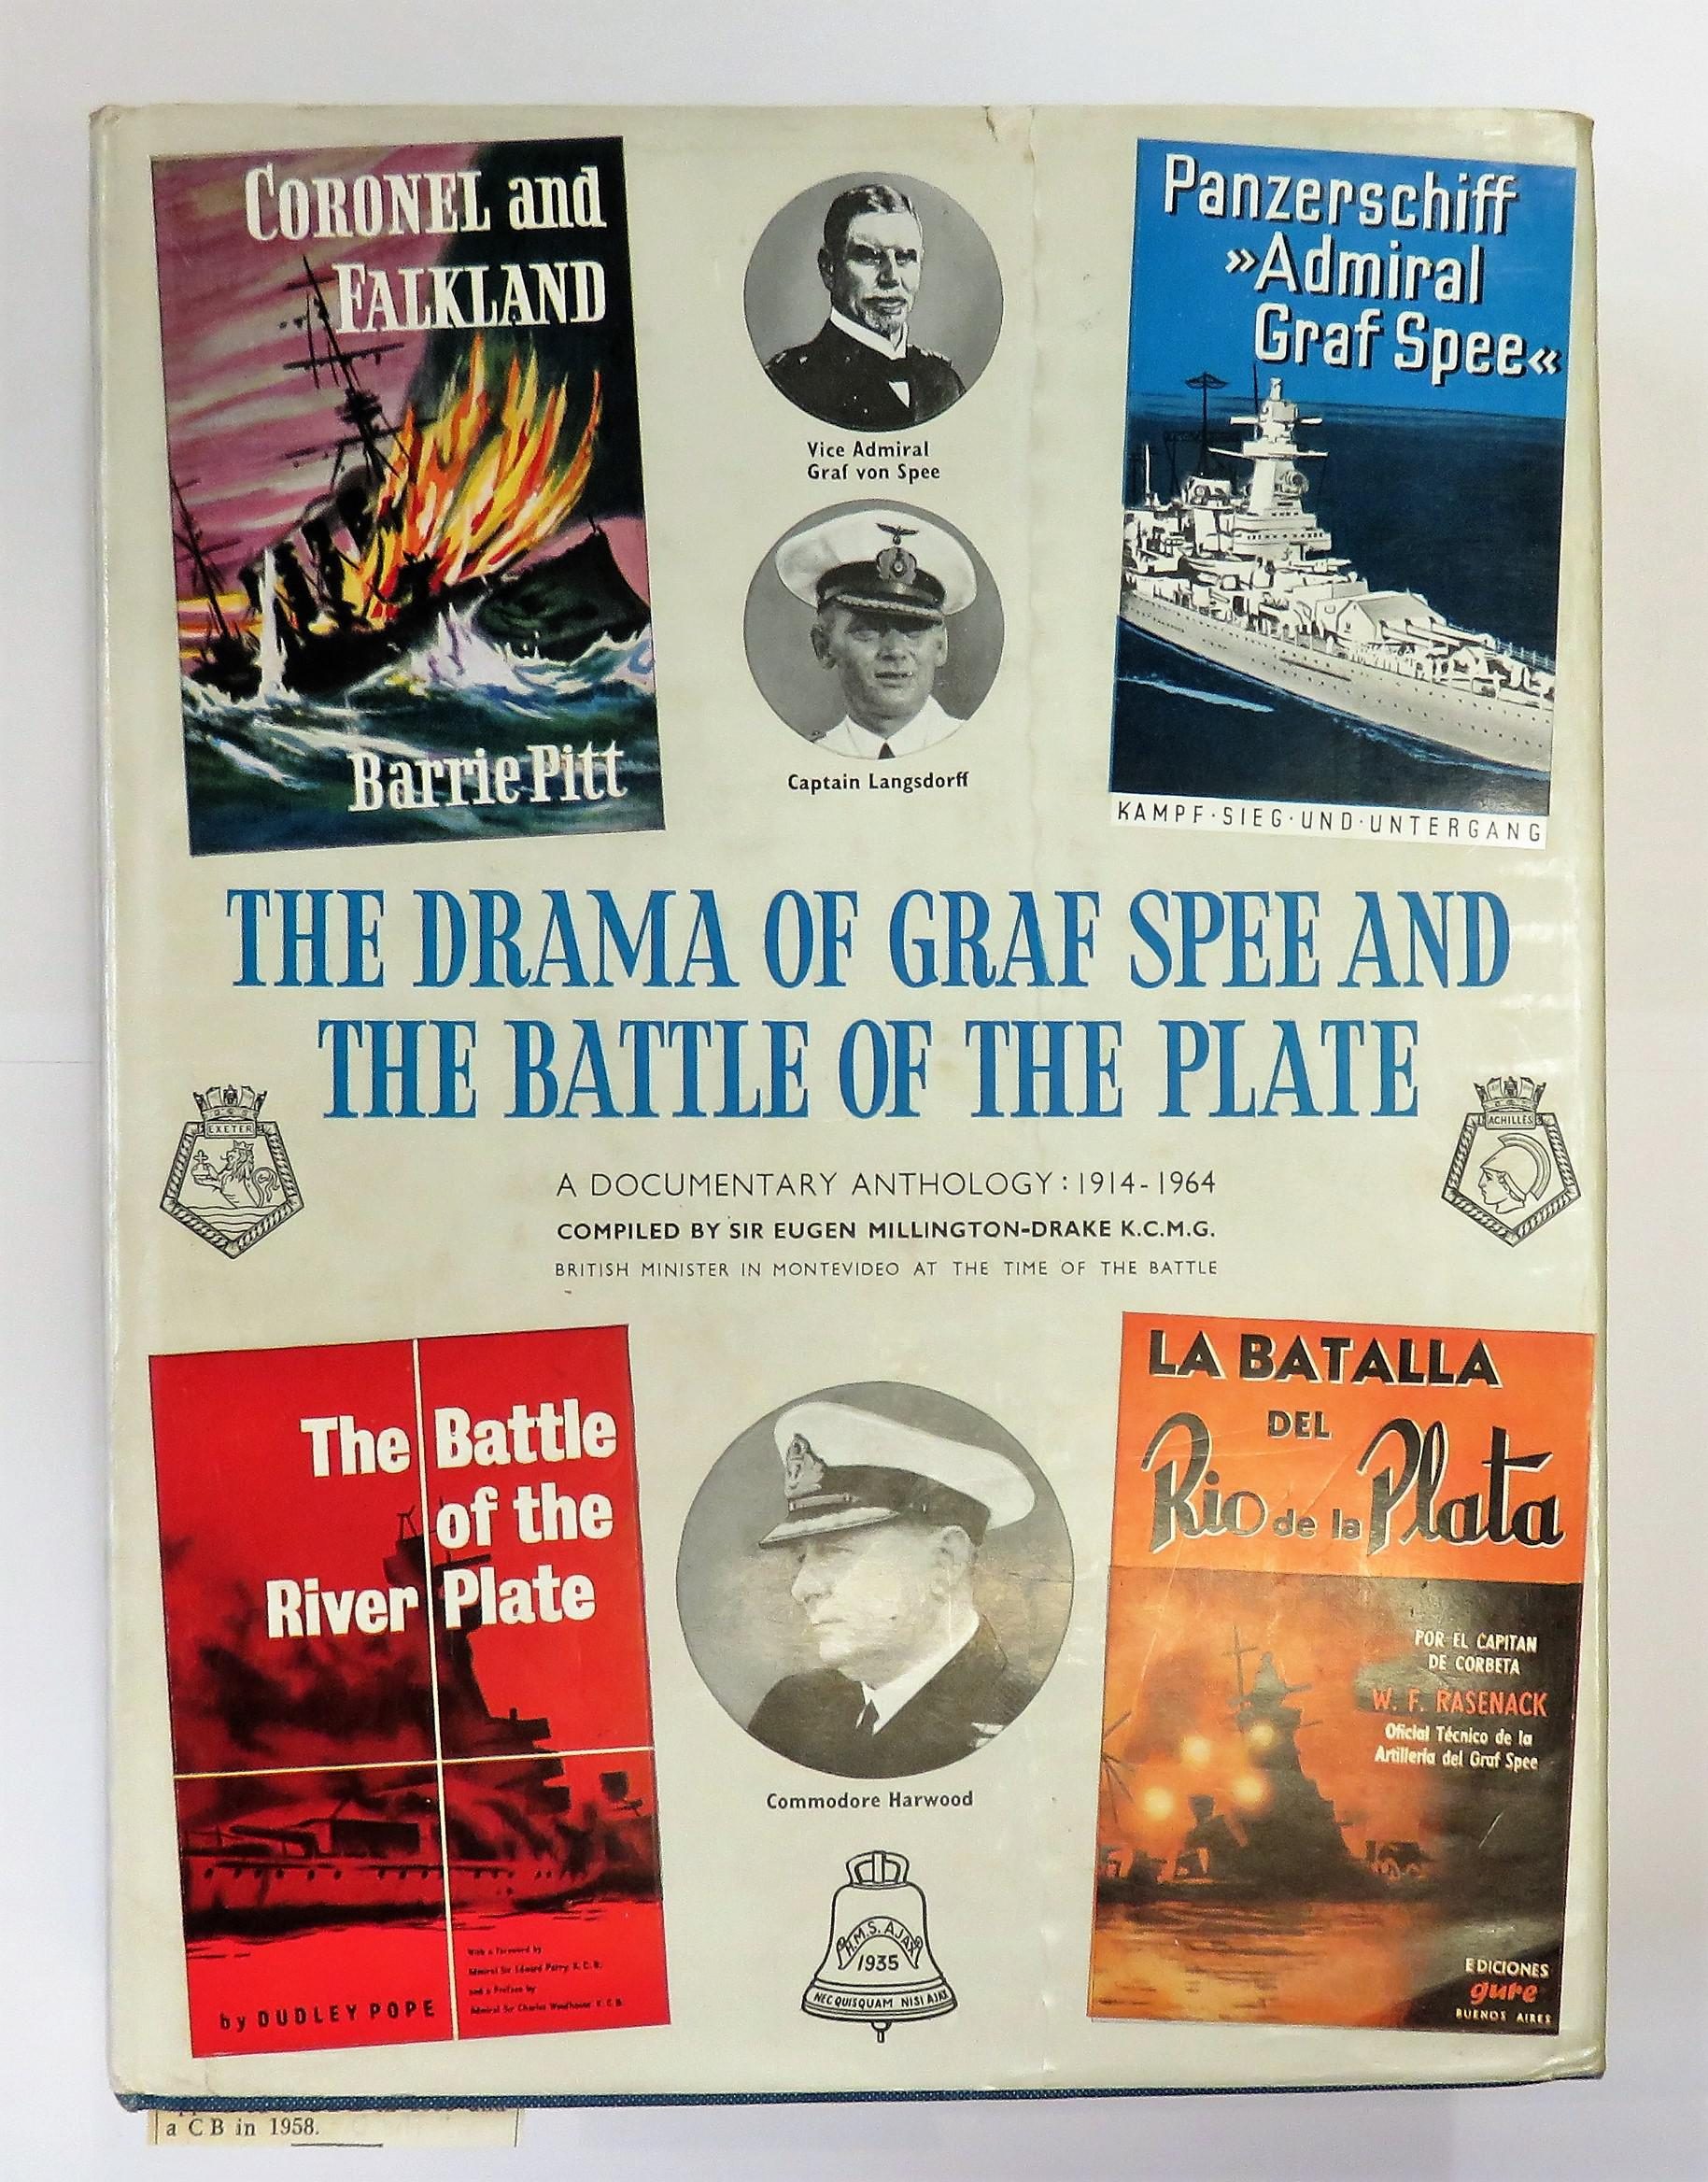 The Drama Of Graf Spee And The Battle Of the Plate A Documentary Anthology 1914-1964